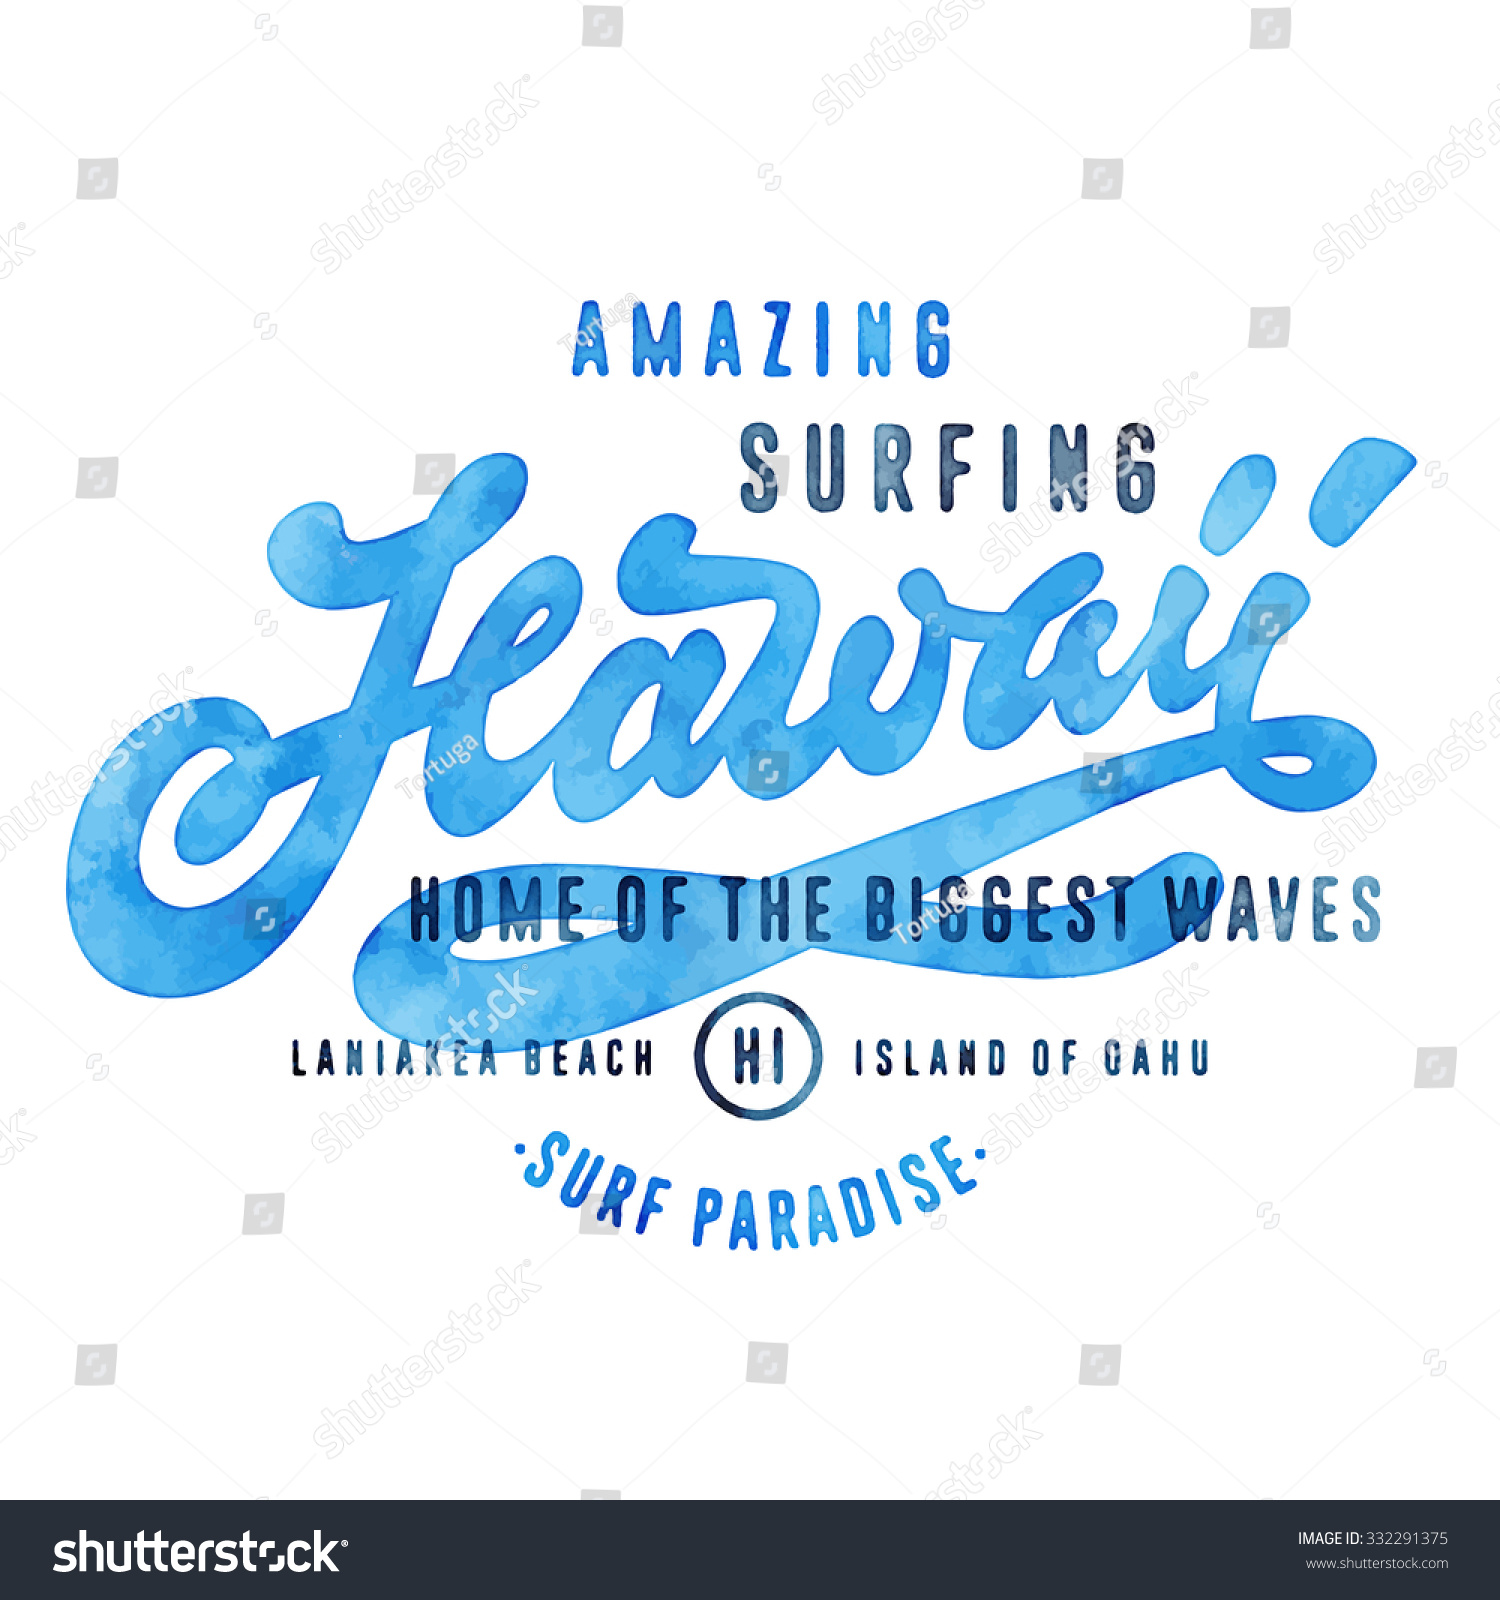 T shirt design hawaii - Amazing Surfing Hawaii Home Of The Biggest Waves Vintage Watercolor Hand Lettered T Shirt